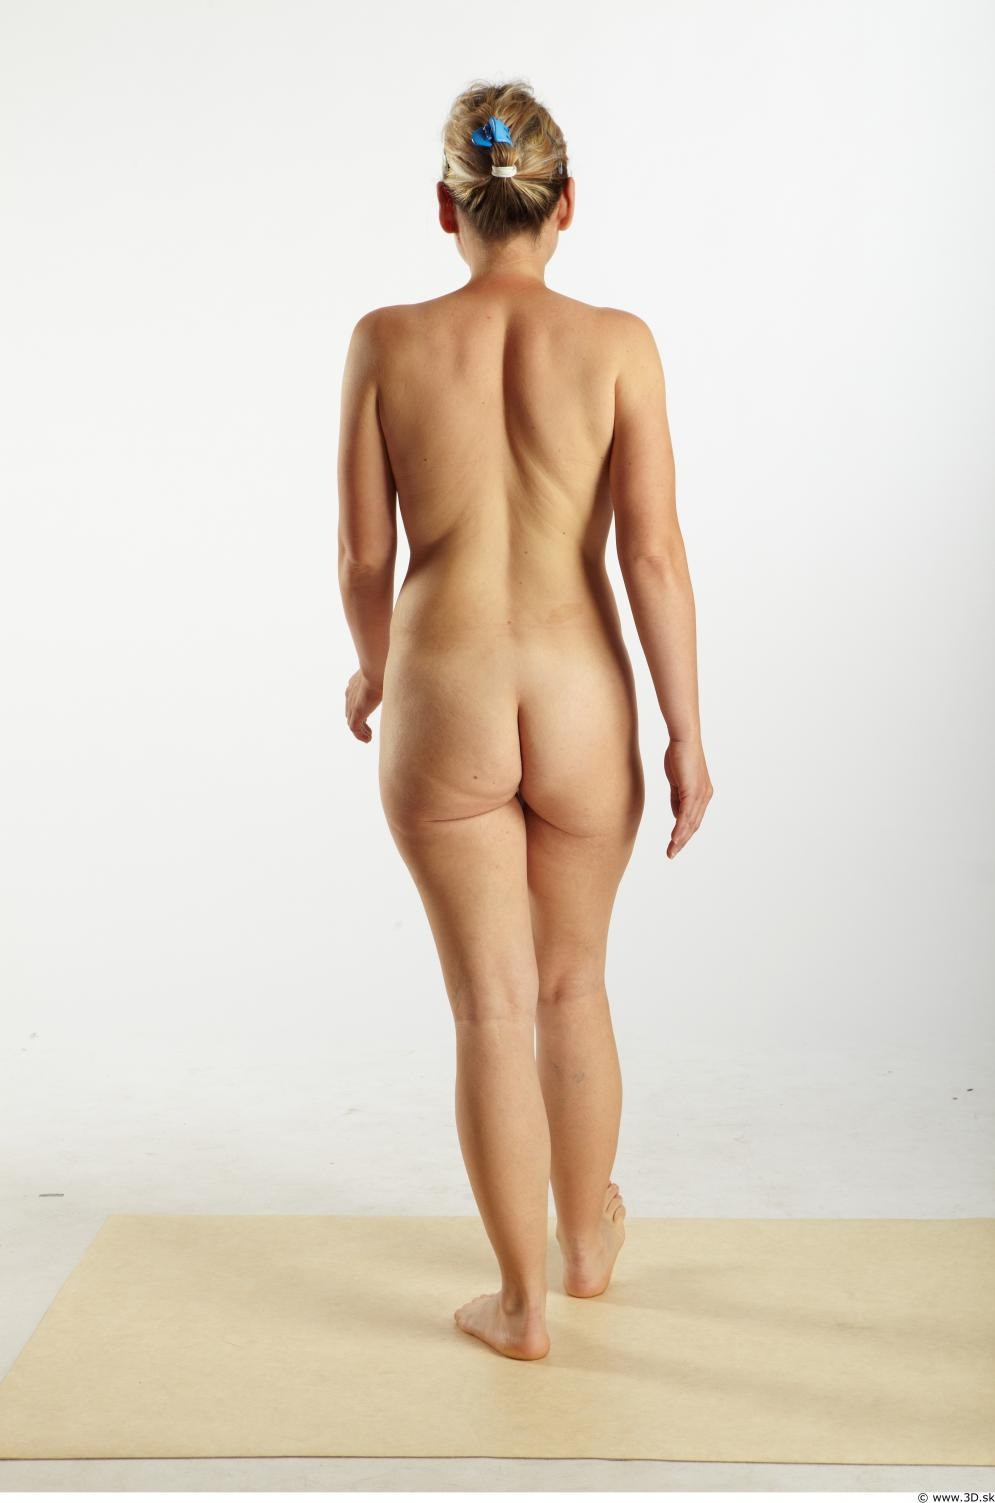 Image from Zita - Female poses references from 3D.sk - 384307zita_poses_0092.jpg